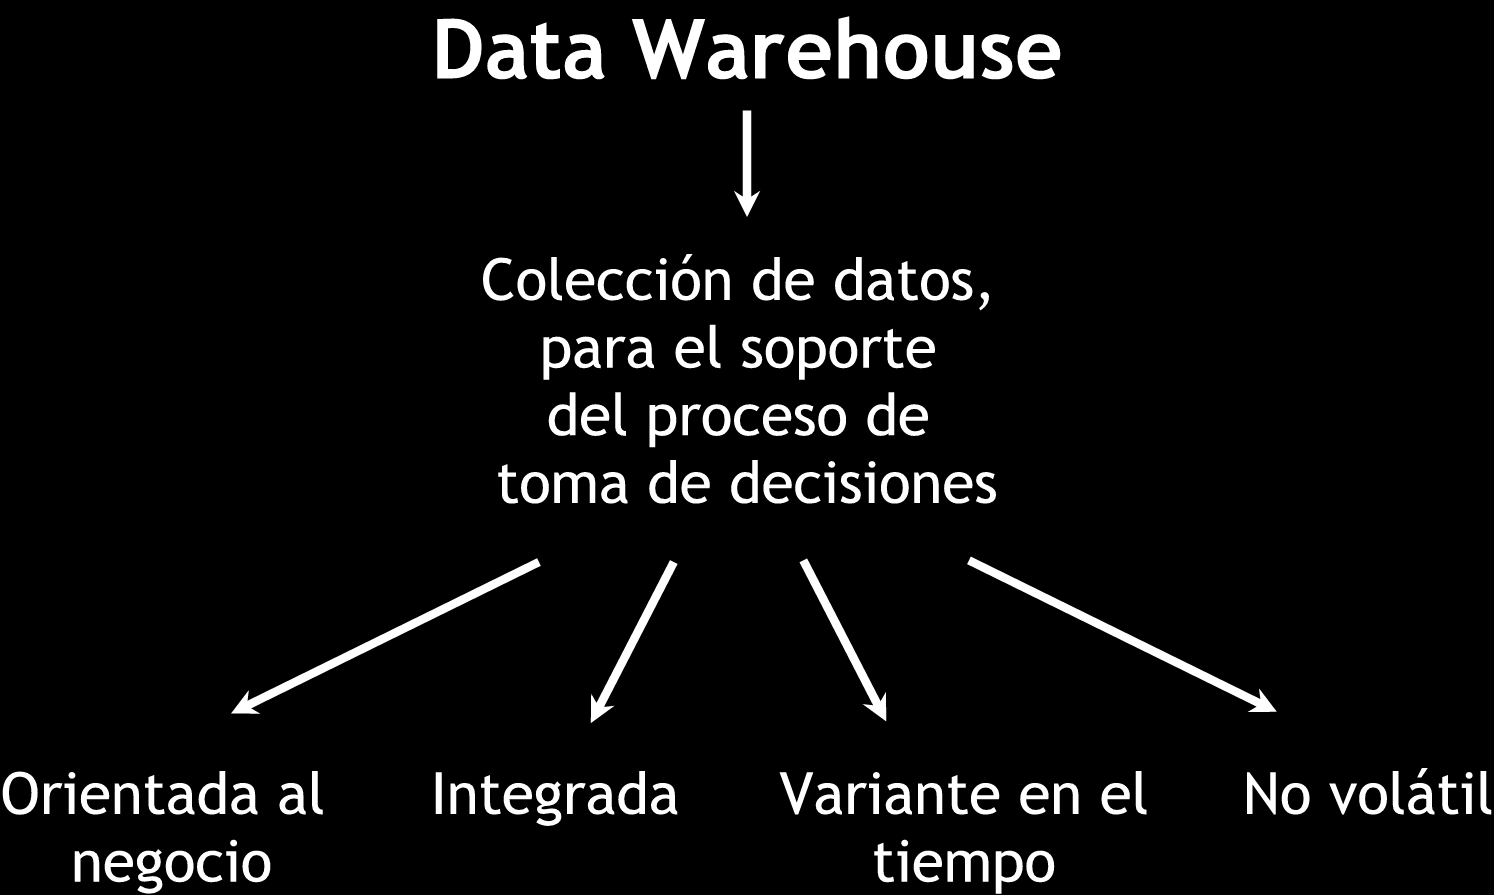 Data Warehouse (DW): definición